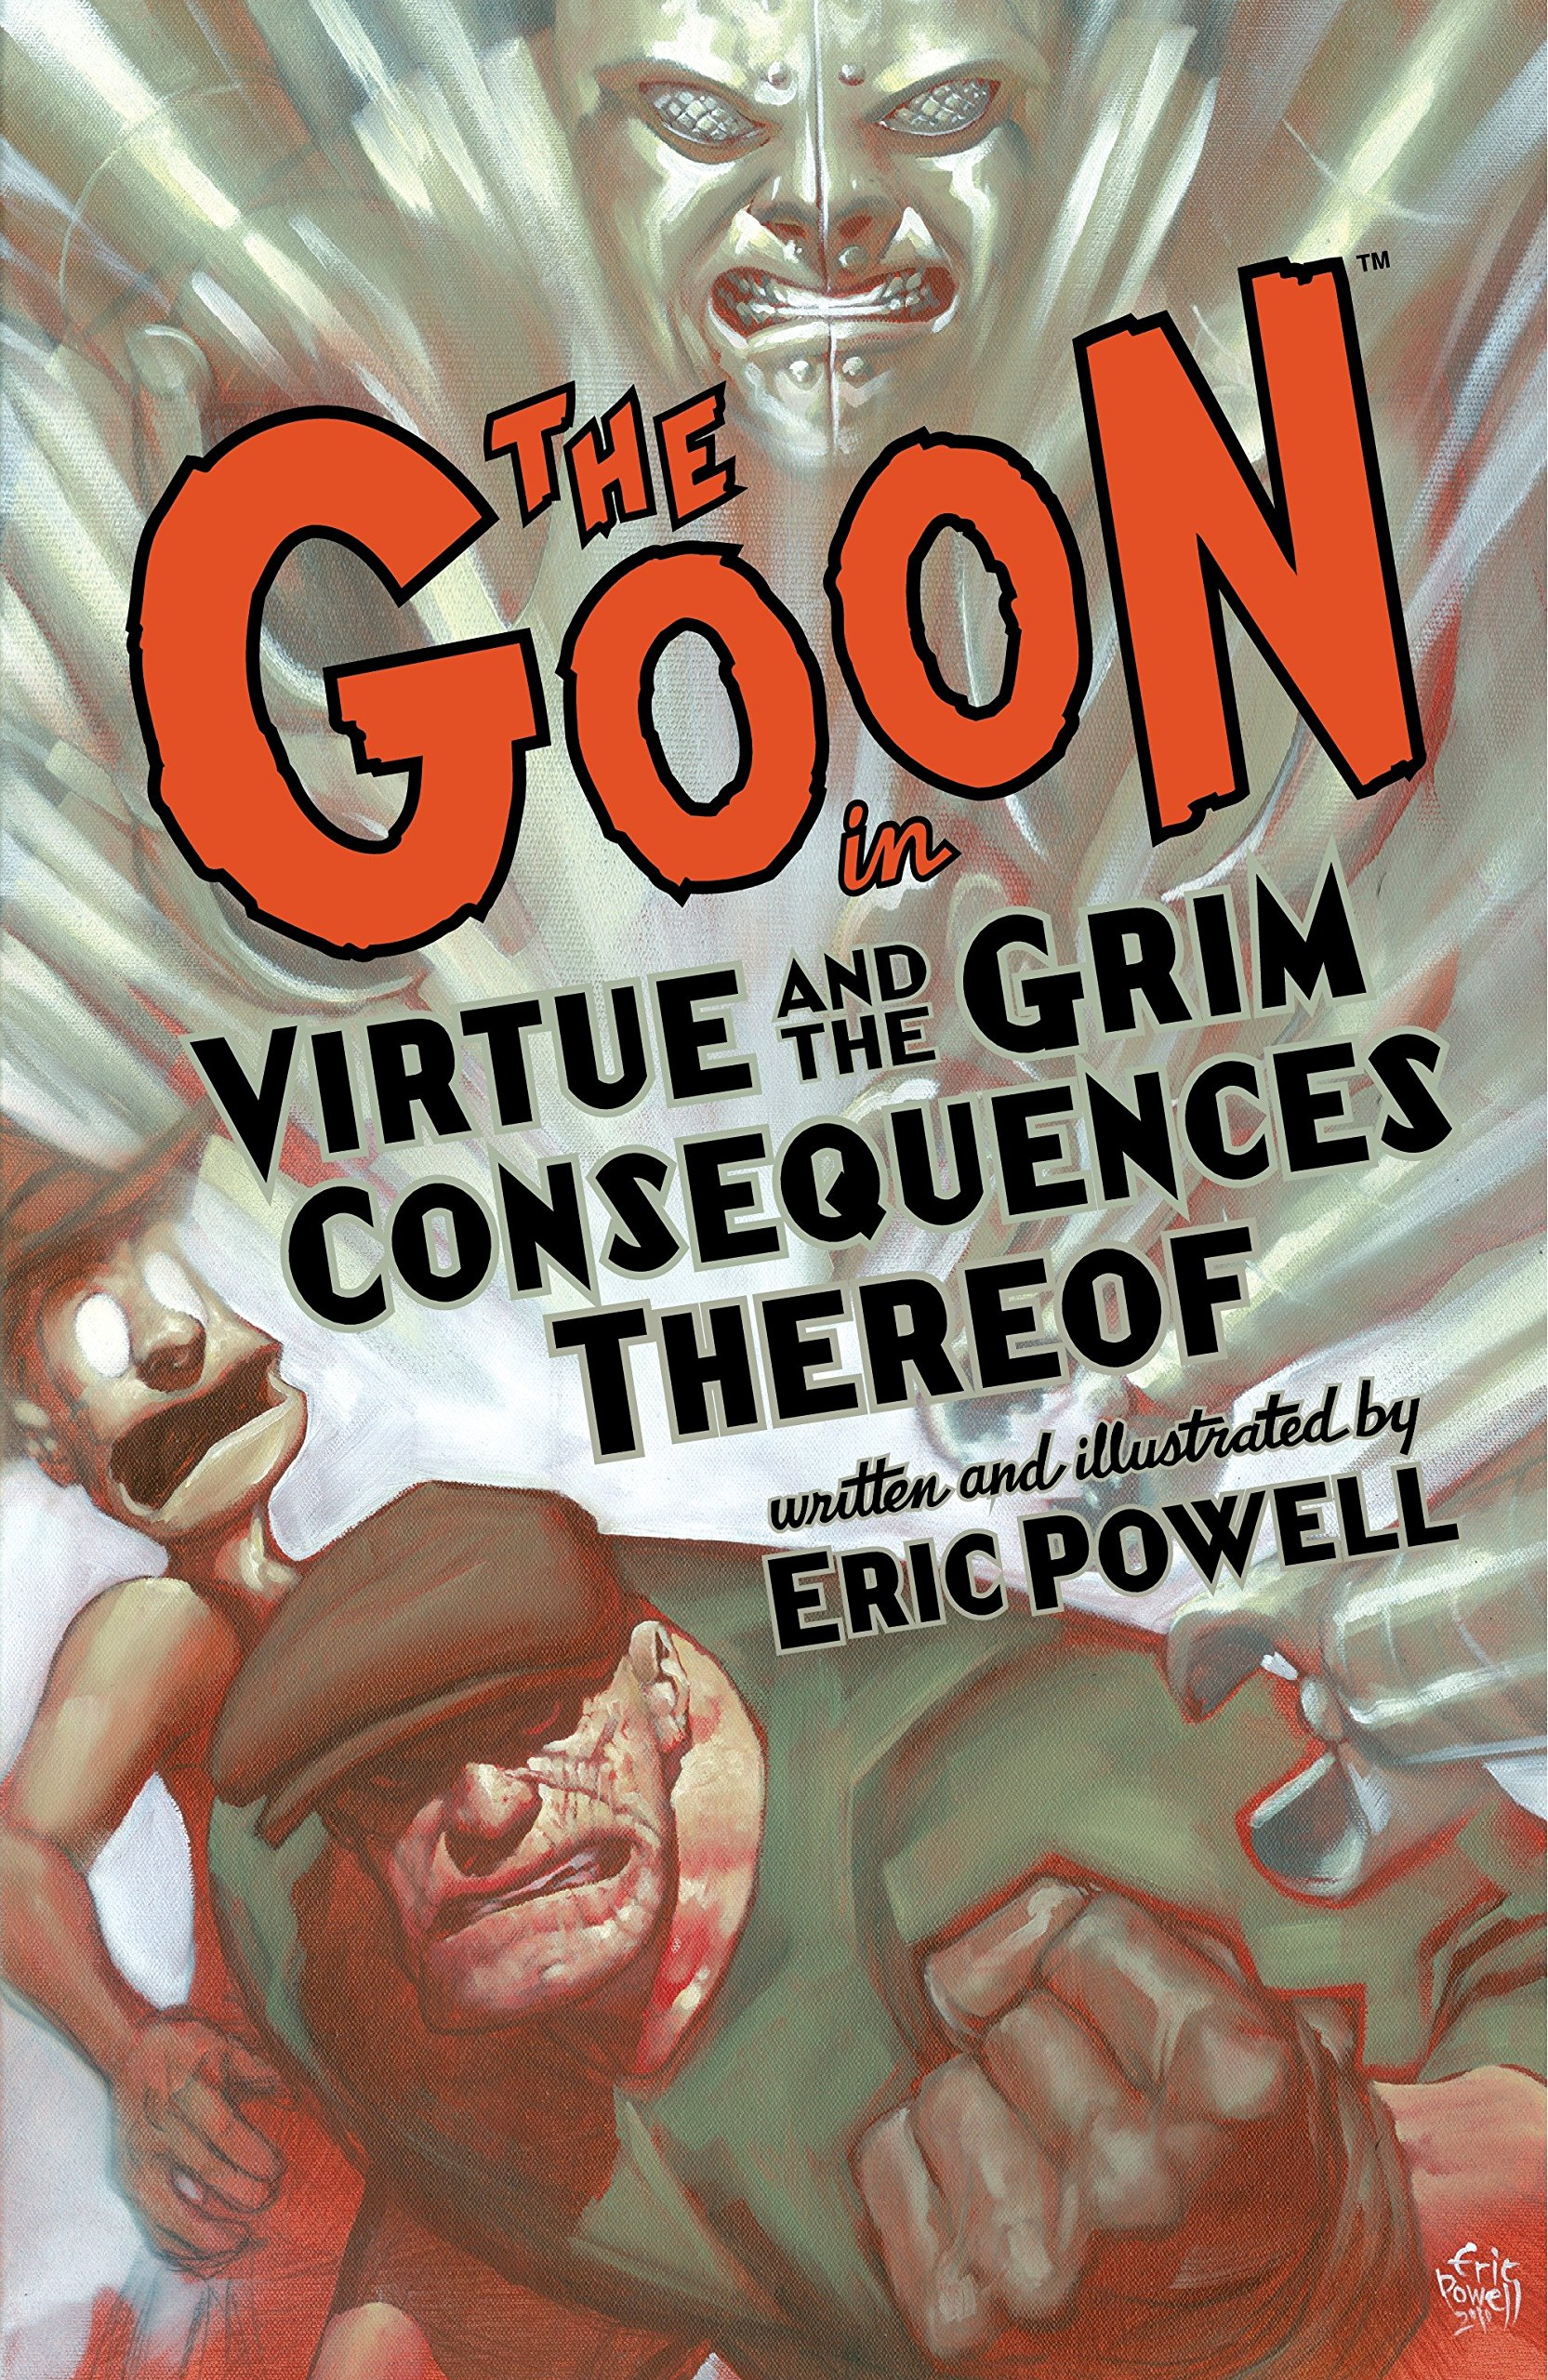 The Goon: Volume 4: Virtue & the Grim Consequences Thereof (2nd edition) by Brand: Dark Horse Comics